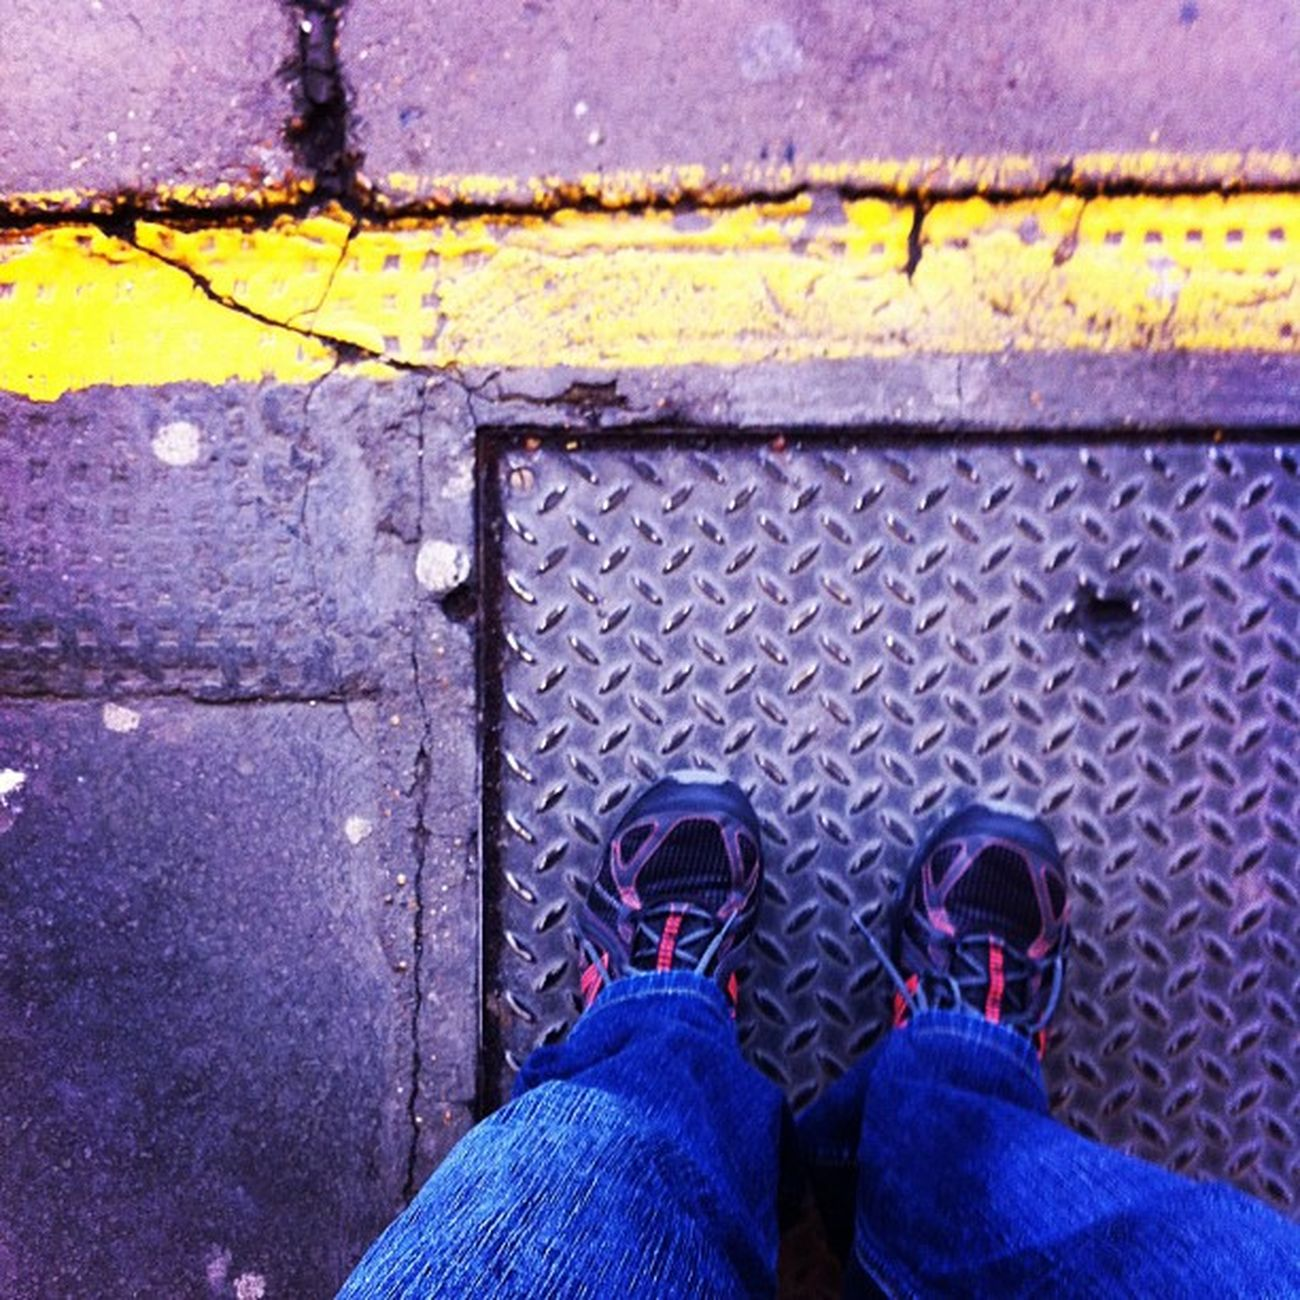 Feet first. #feetfirst #london #instagram #iphone #iphoneography #photography # IPhone IPhoneography London Photography Instagram Feetfirst